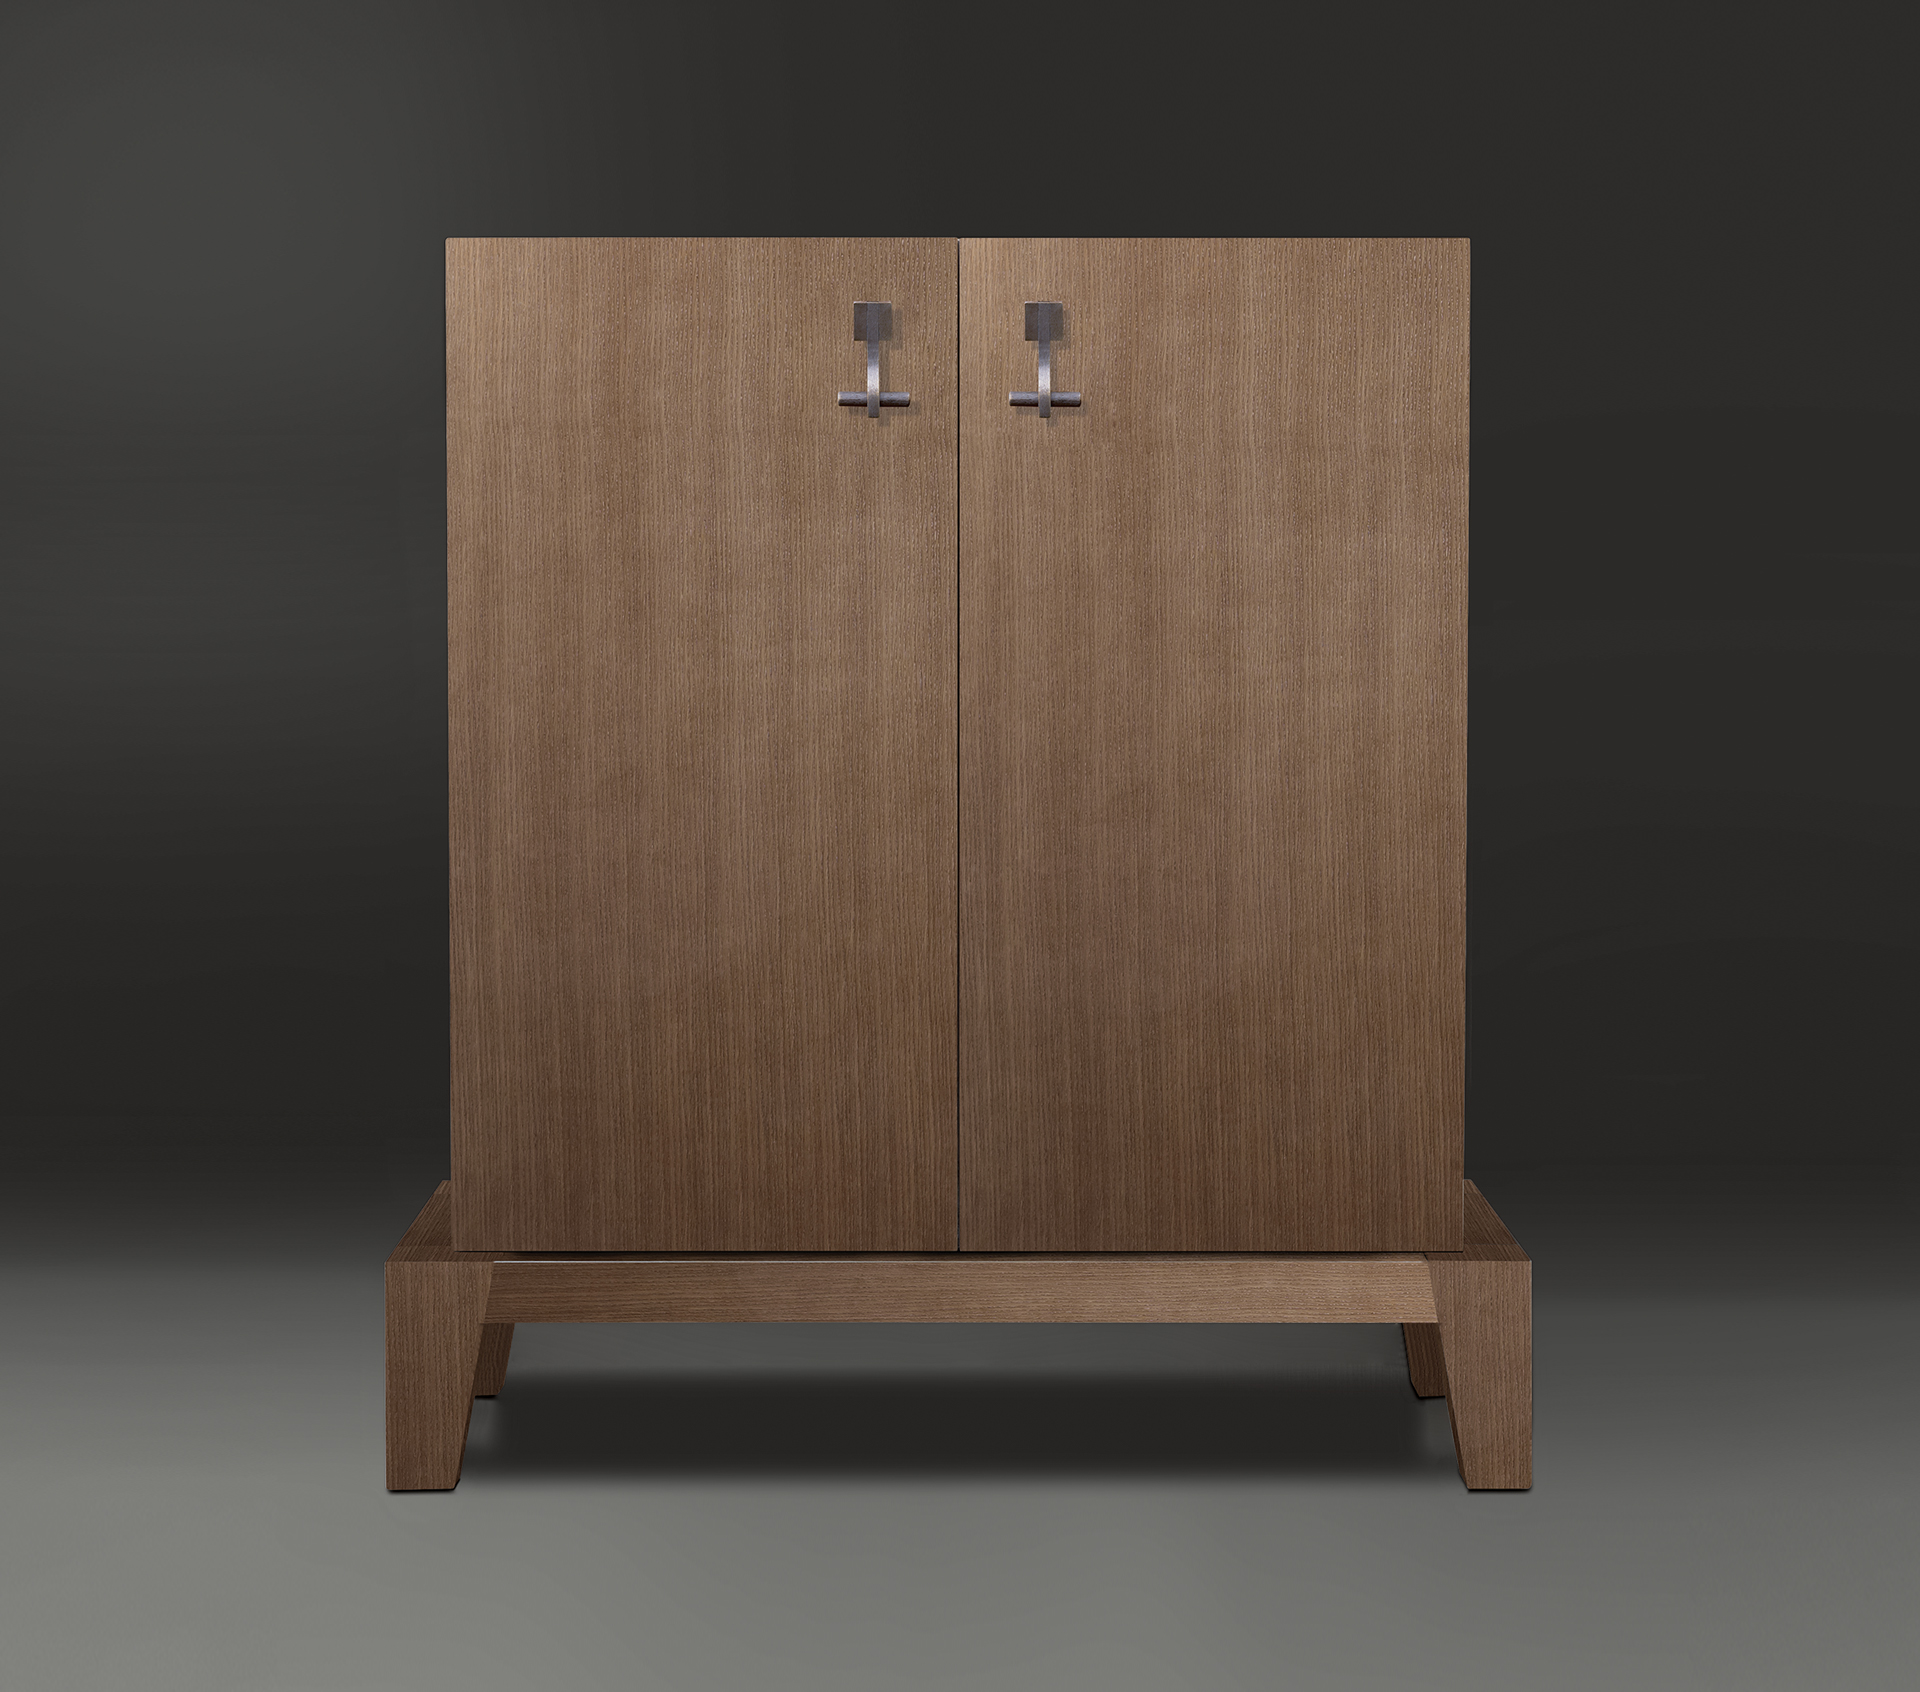 Detail of Amarcord in light grey mahogany with doors inlaid in amaranth wood, light grey mahogany and teak.